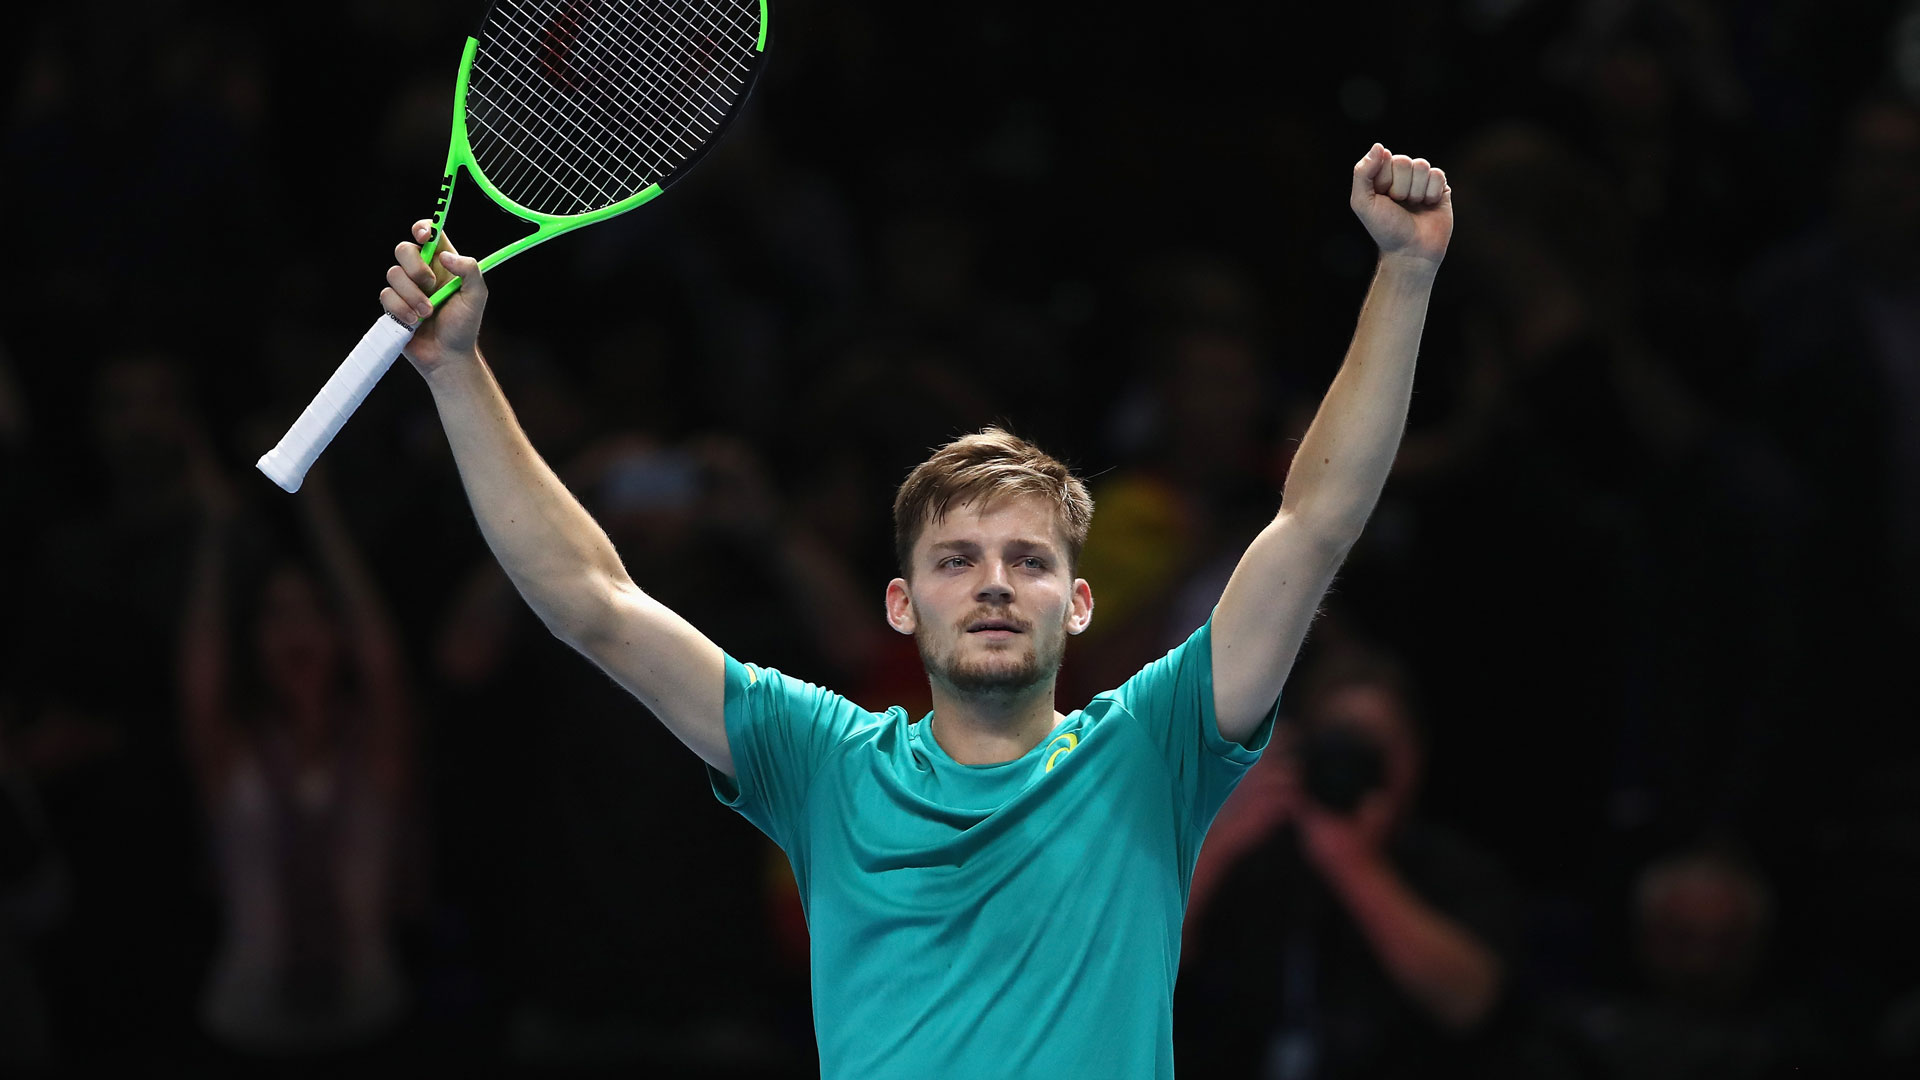 001-goffin-nitto-atp-finals-2017-monday